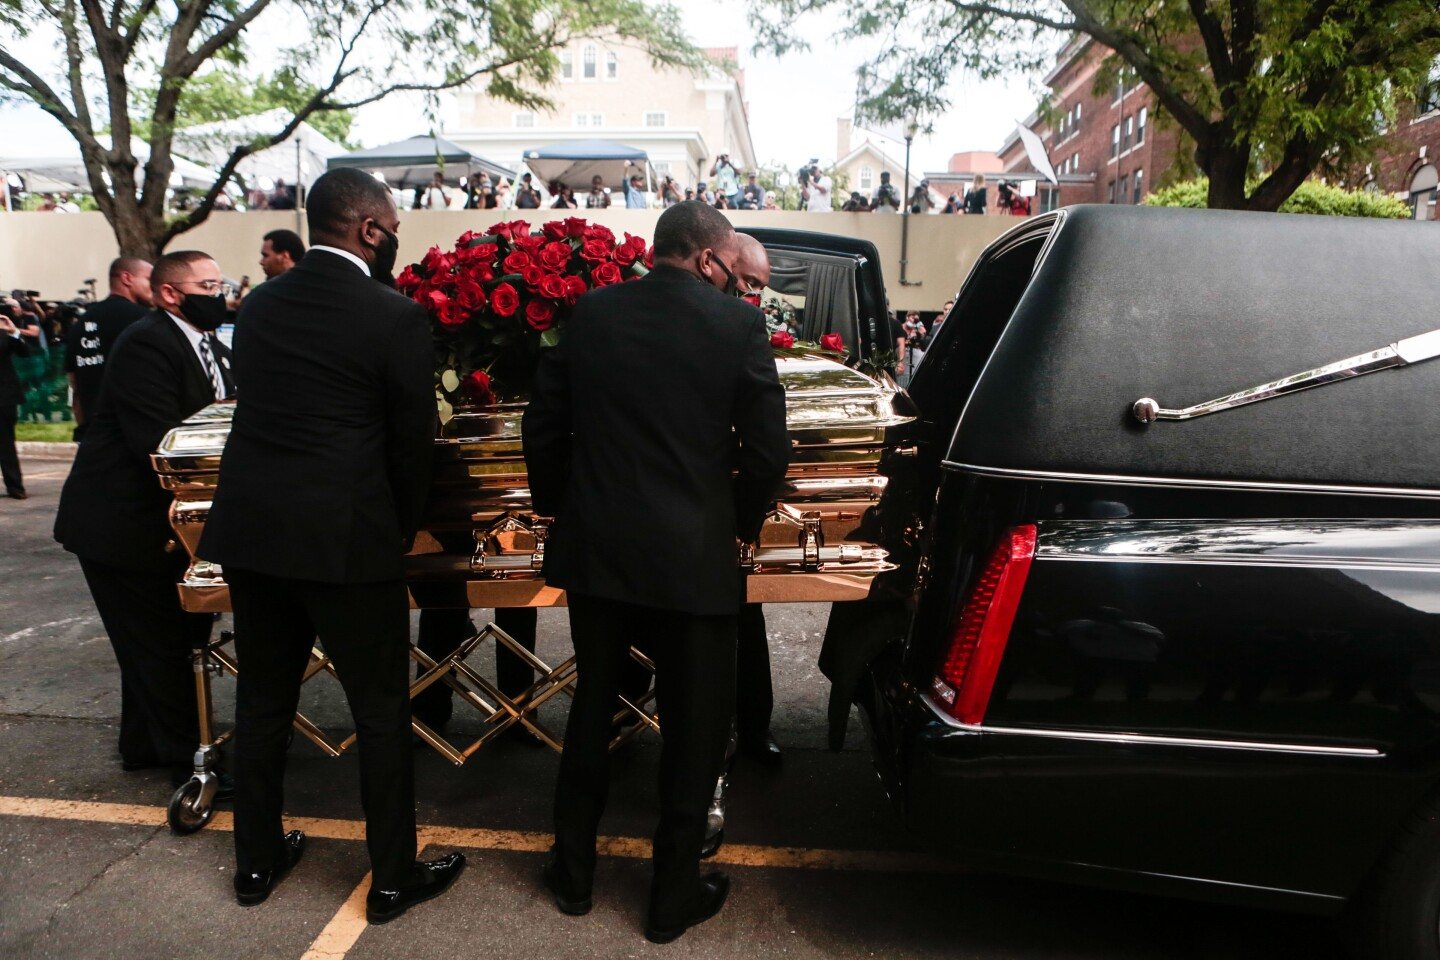 MINNEAPOLIS , MINNESOTA - JUNE 04: Hundreds of people cheer and chant as George Floyd's casket is placed into the hearse after his memorial service on Thursday, June 4, 2020 in Minneapolis , Minnesota. (Jason Armond / Los Angeles Times)